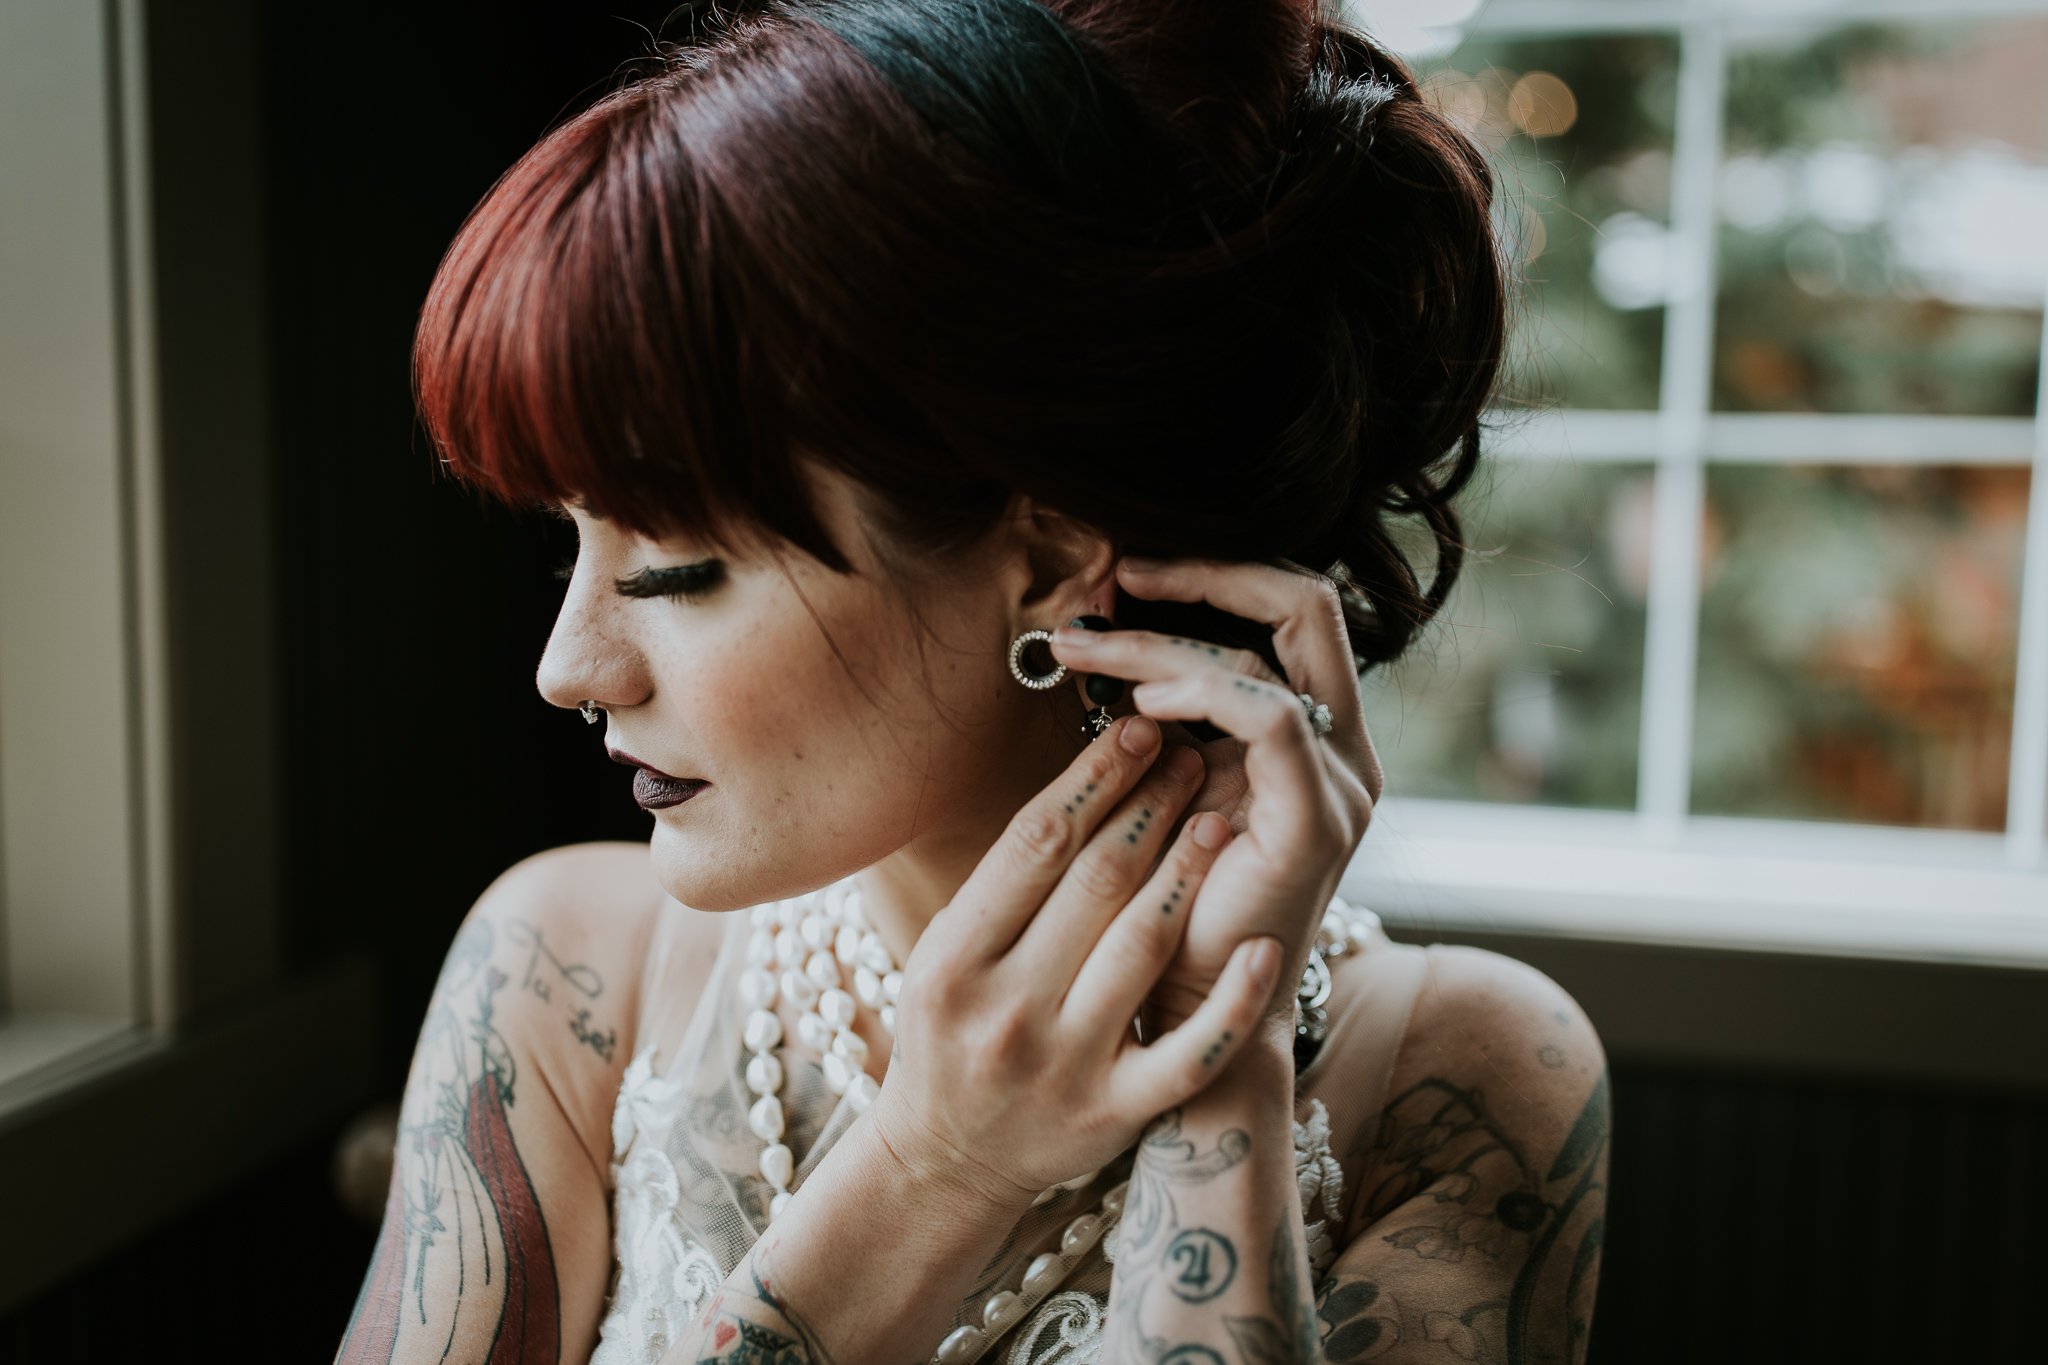 Tattooed bride with red hair adjusting earring while wearing pearls at Creekside Villag canmore